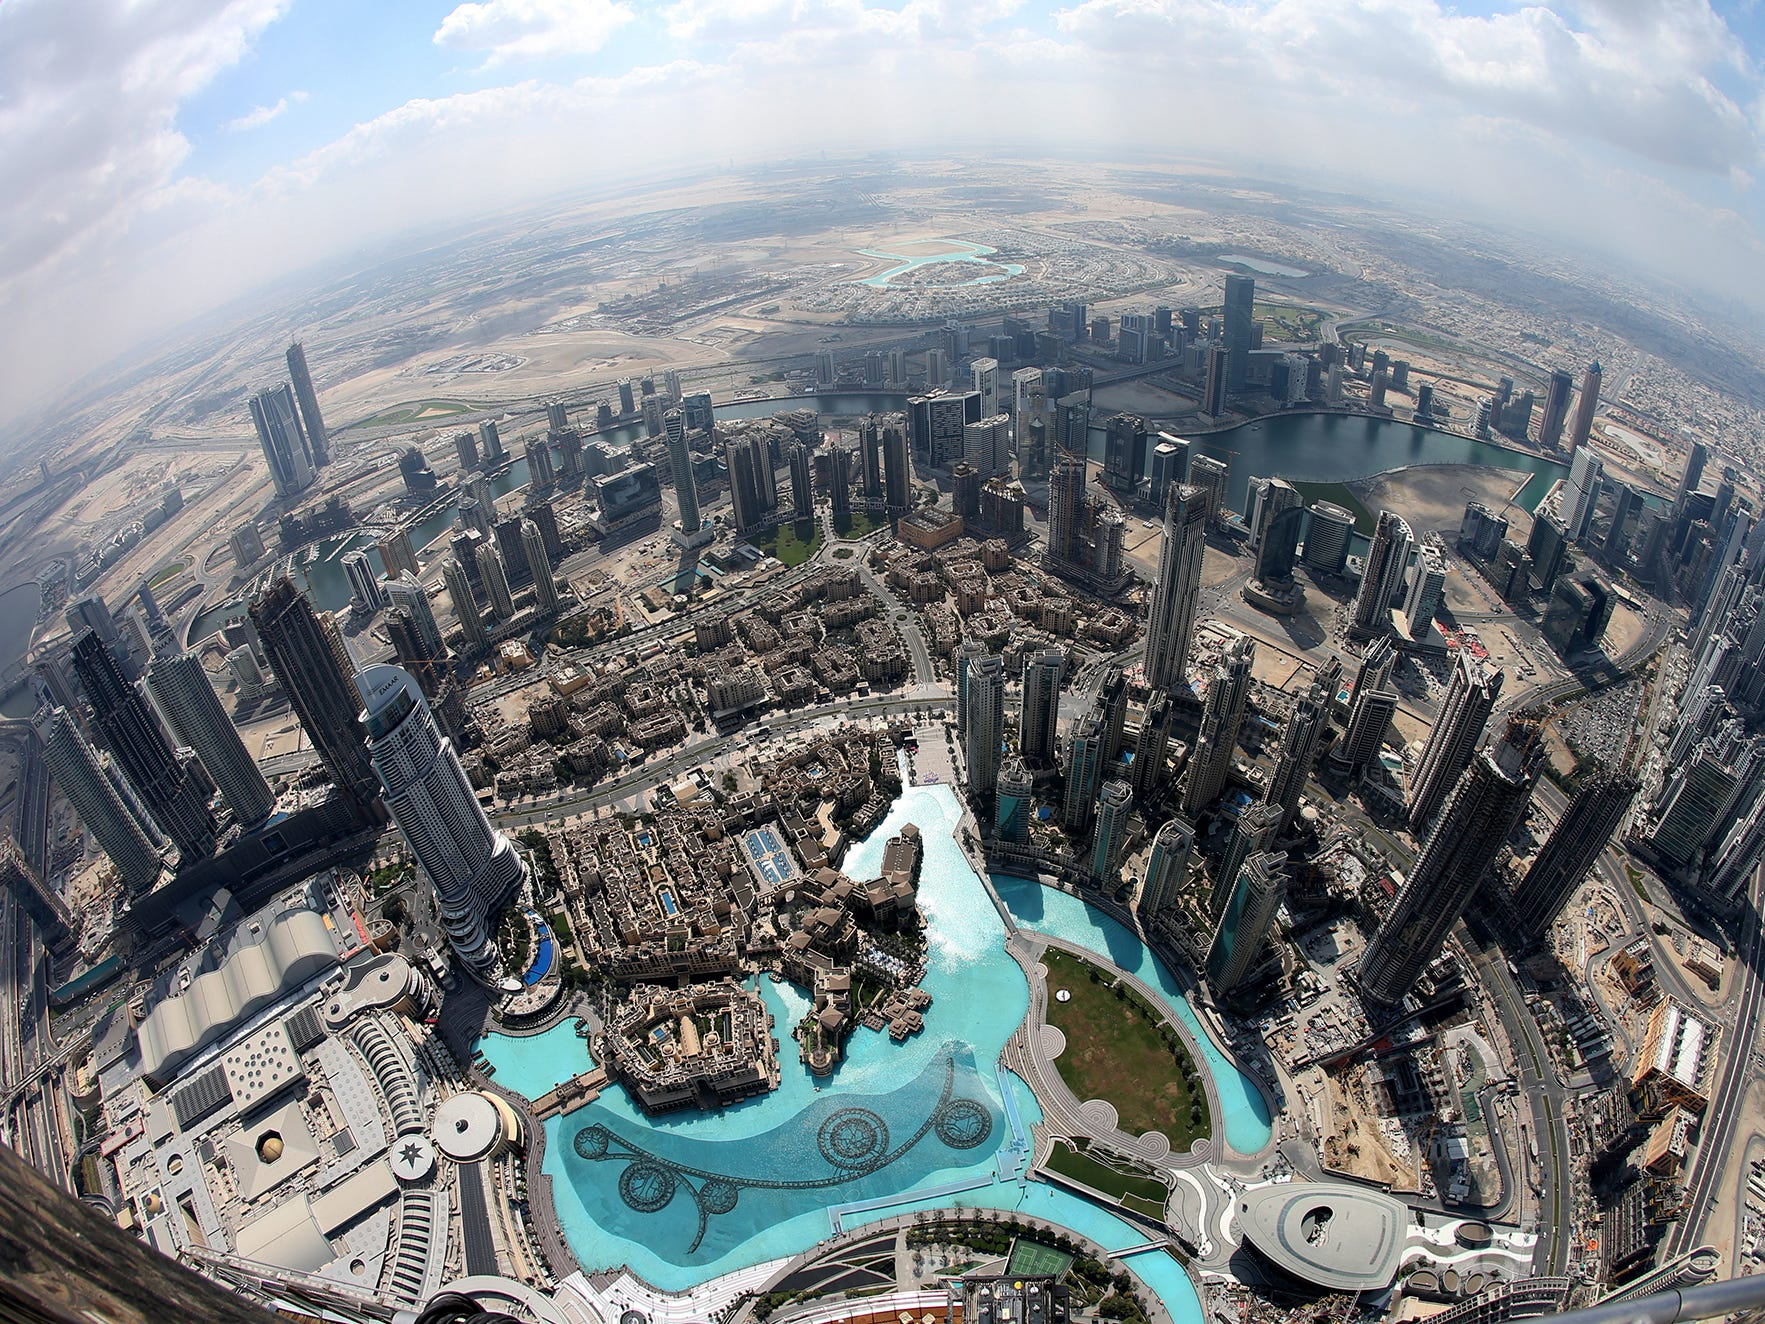 epa07367641 A picture taken with a fisheye lens shows areas close to the world's tallest building Burj Khalifa as seen from the the new highest lounge in the world at Burj Khalifa in Dubai, United Arab Emirates, 13 February 2019. Ahmad Al Falasi, Executive Director Emaar Properties announced during media briefing the opening of highest lounge in the world at Burj Khalifa located on the 152, 153, and 154 floors at 575 metres, with each have its distinctive settings assuring never before seen views of the city.  EPA-EFE/ALI HAIDER ORG XMIT: XAH051